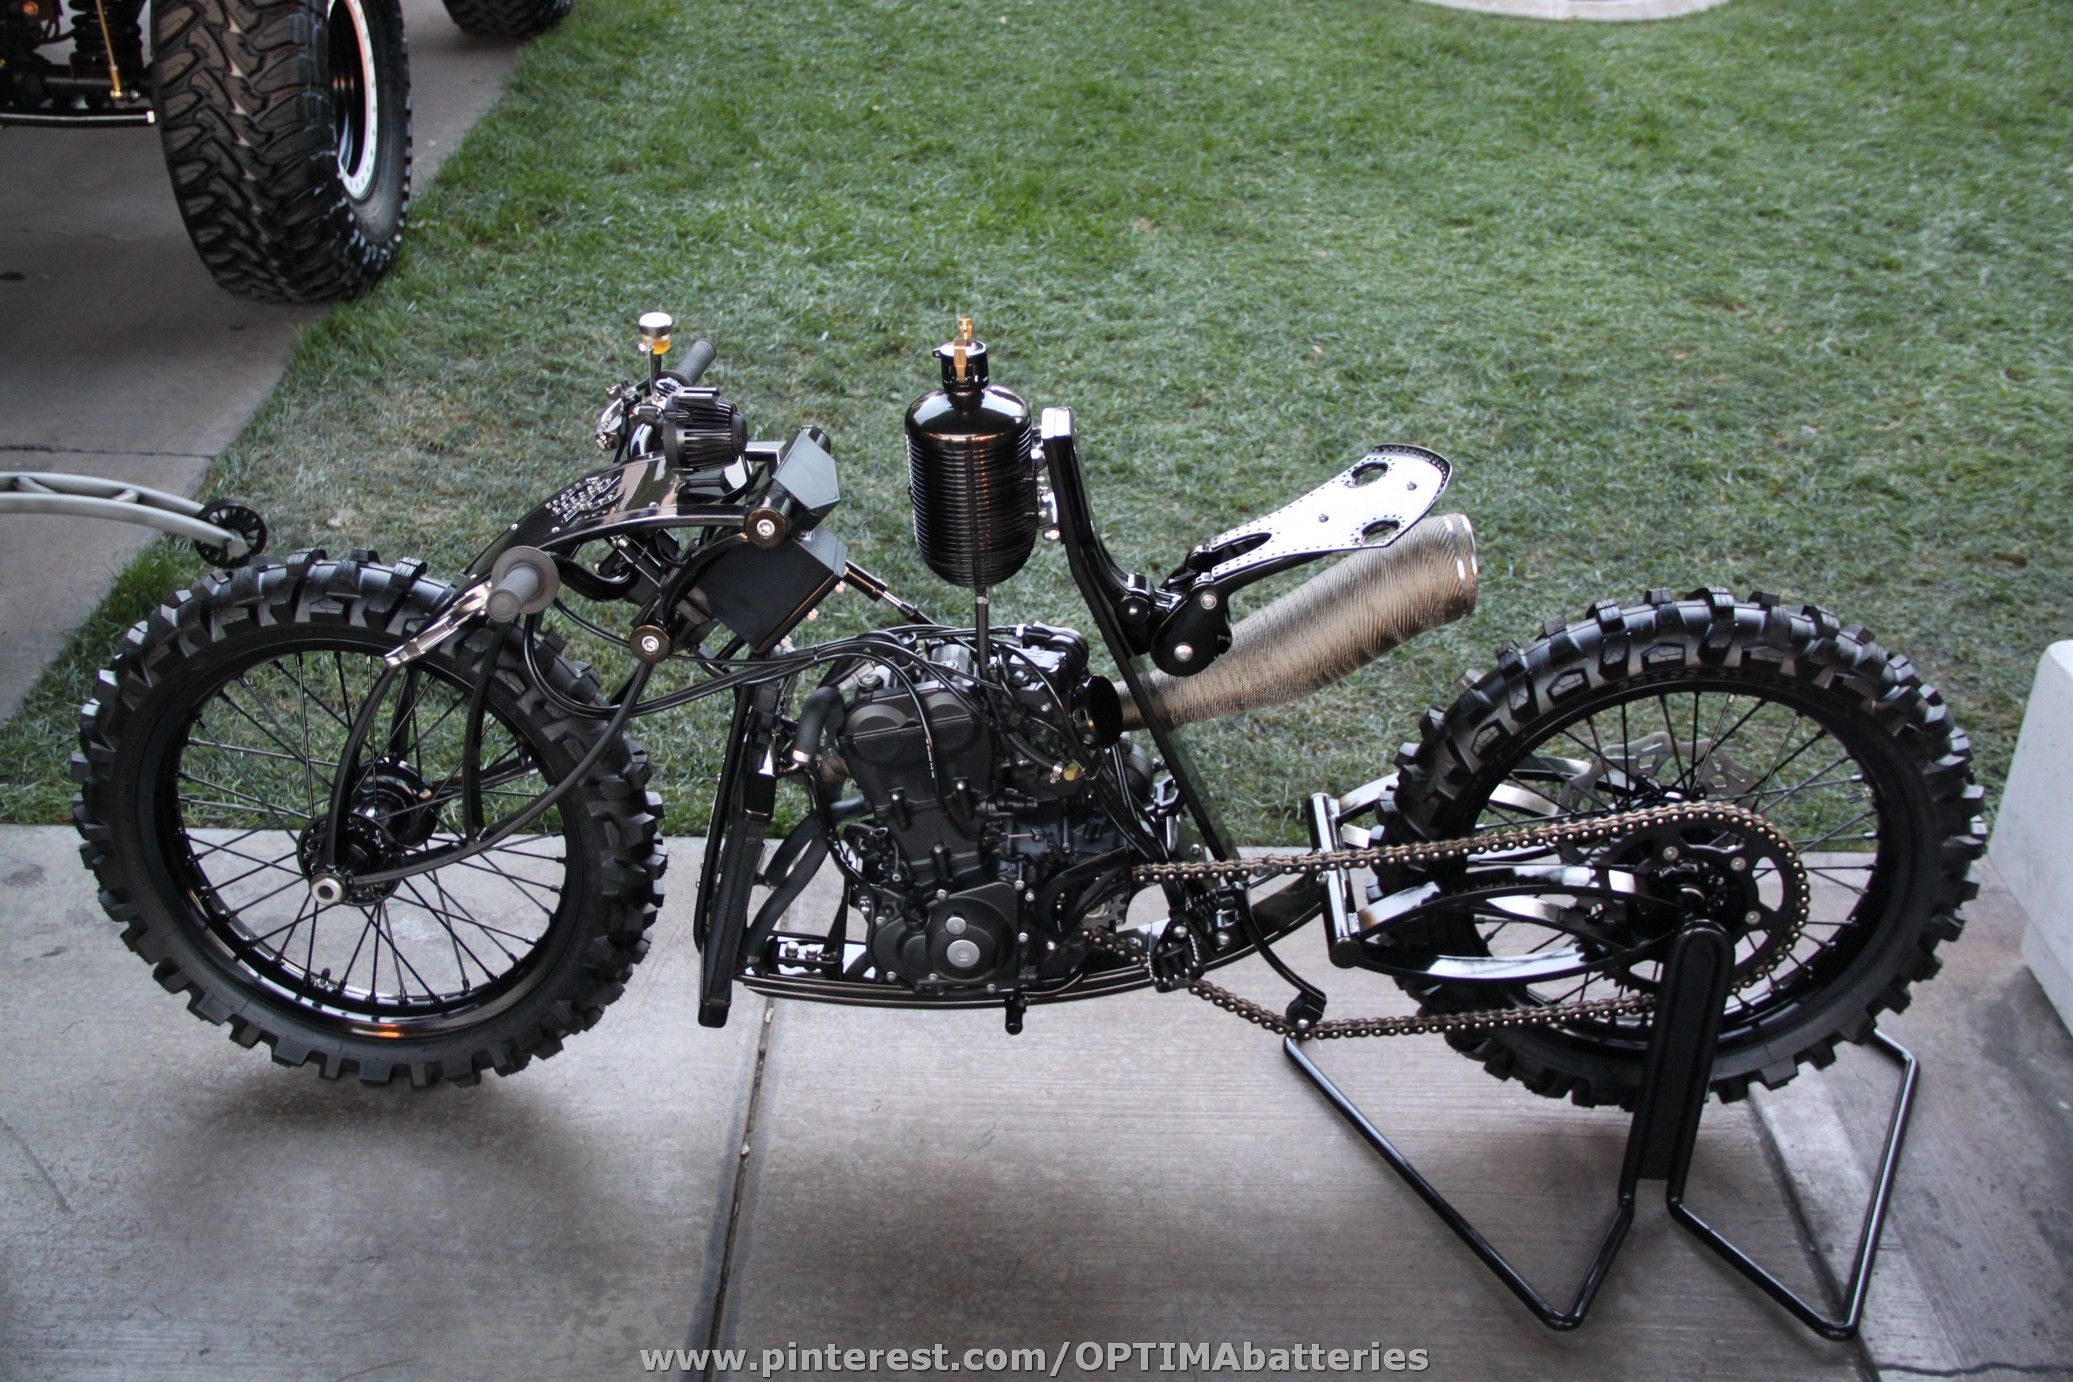 From SEMA 2012 Custom Motorcycle The Right Colors Would Make This VERY Steampunk